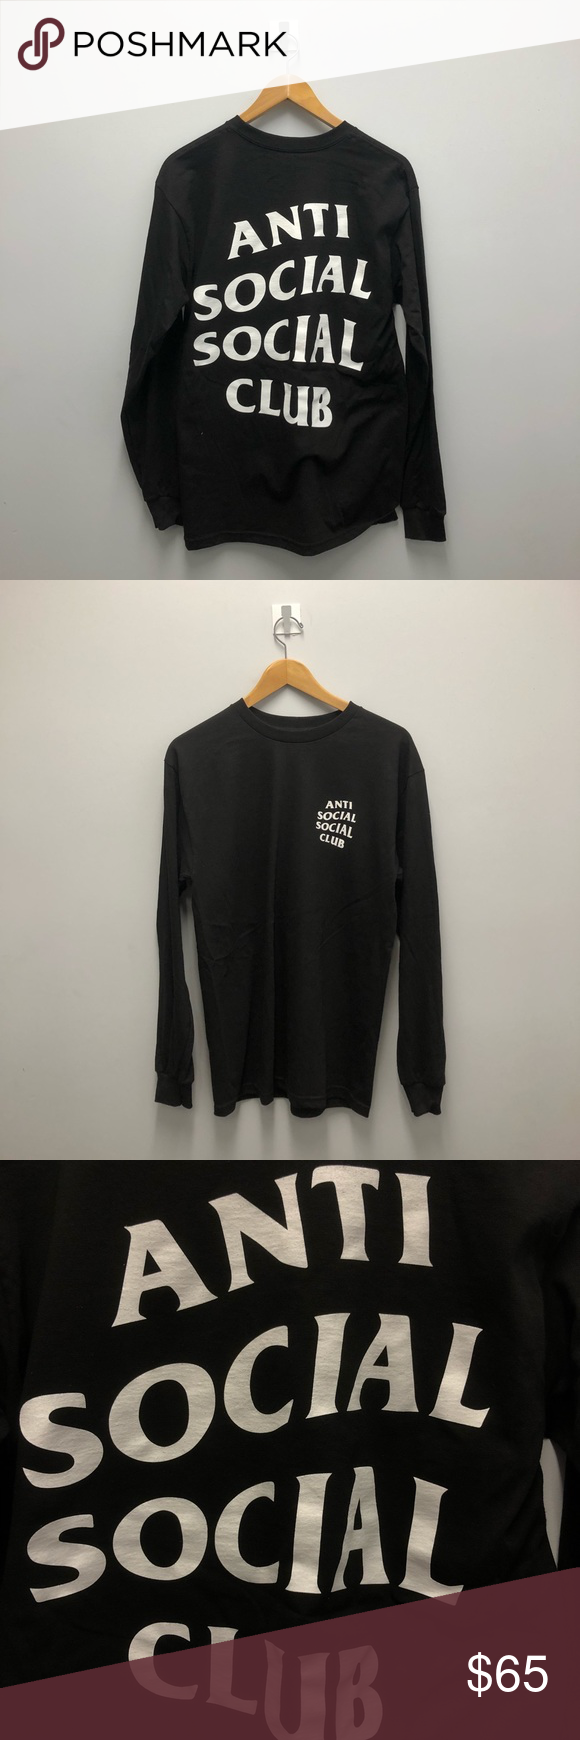 d9bd4b7b8768 Anti social club shirt Authentic anti social club long sleeve sleeve  Getting rid of my Assc lot Fits true to size Great condition 10 10  Accepting reasonable ...